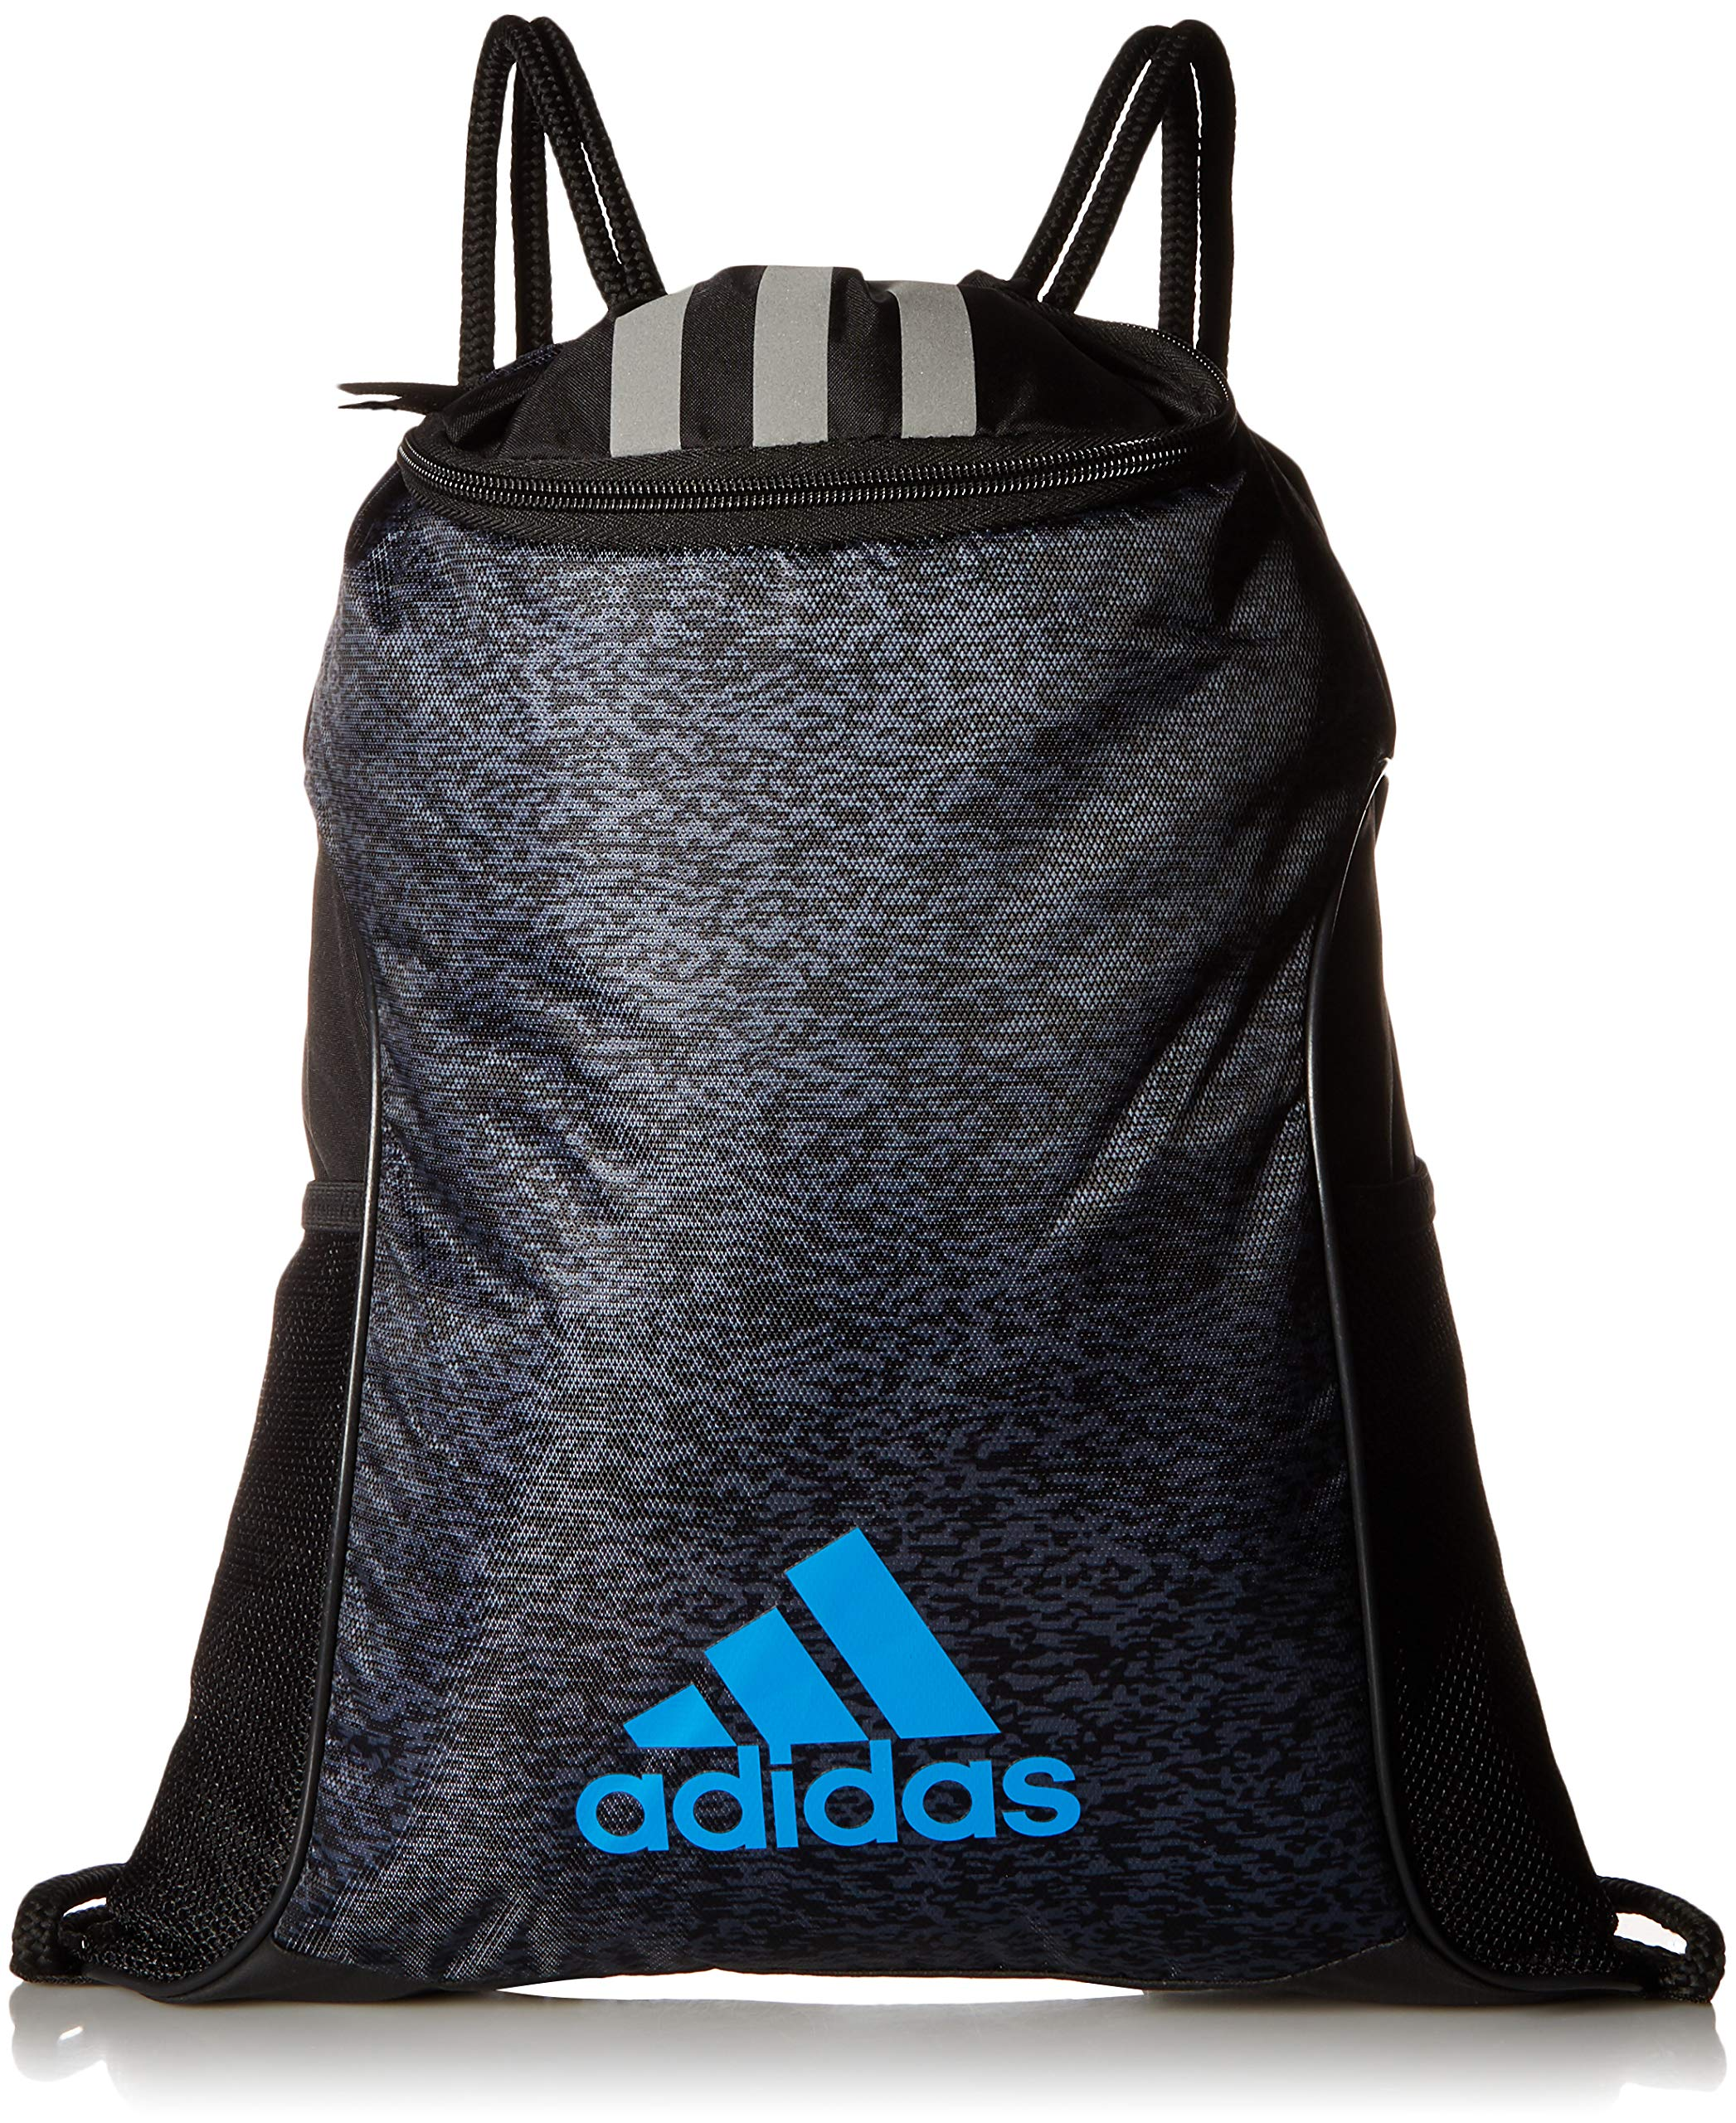 adidas Team Issue II Sackpack, Onix Pixel/Black/Bright Blue, One Size